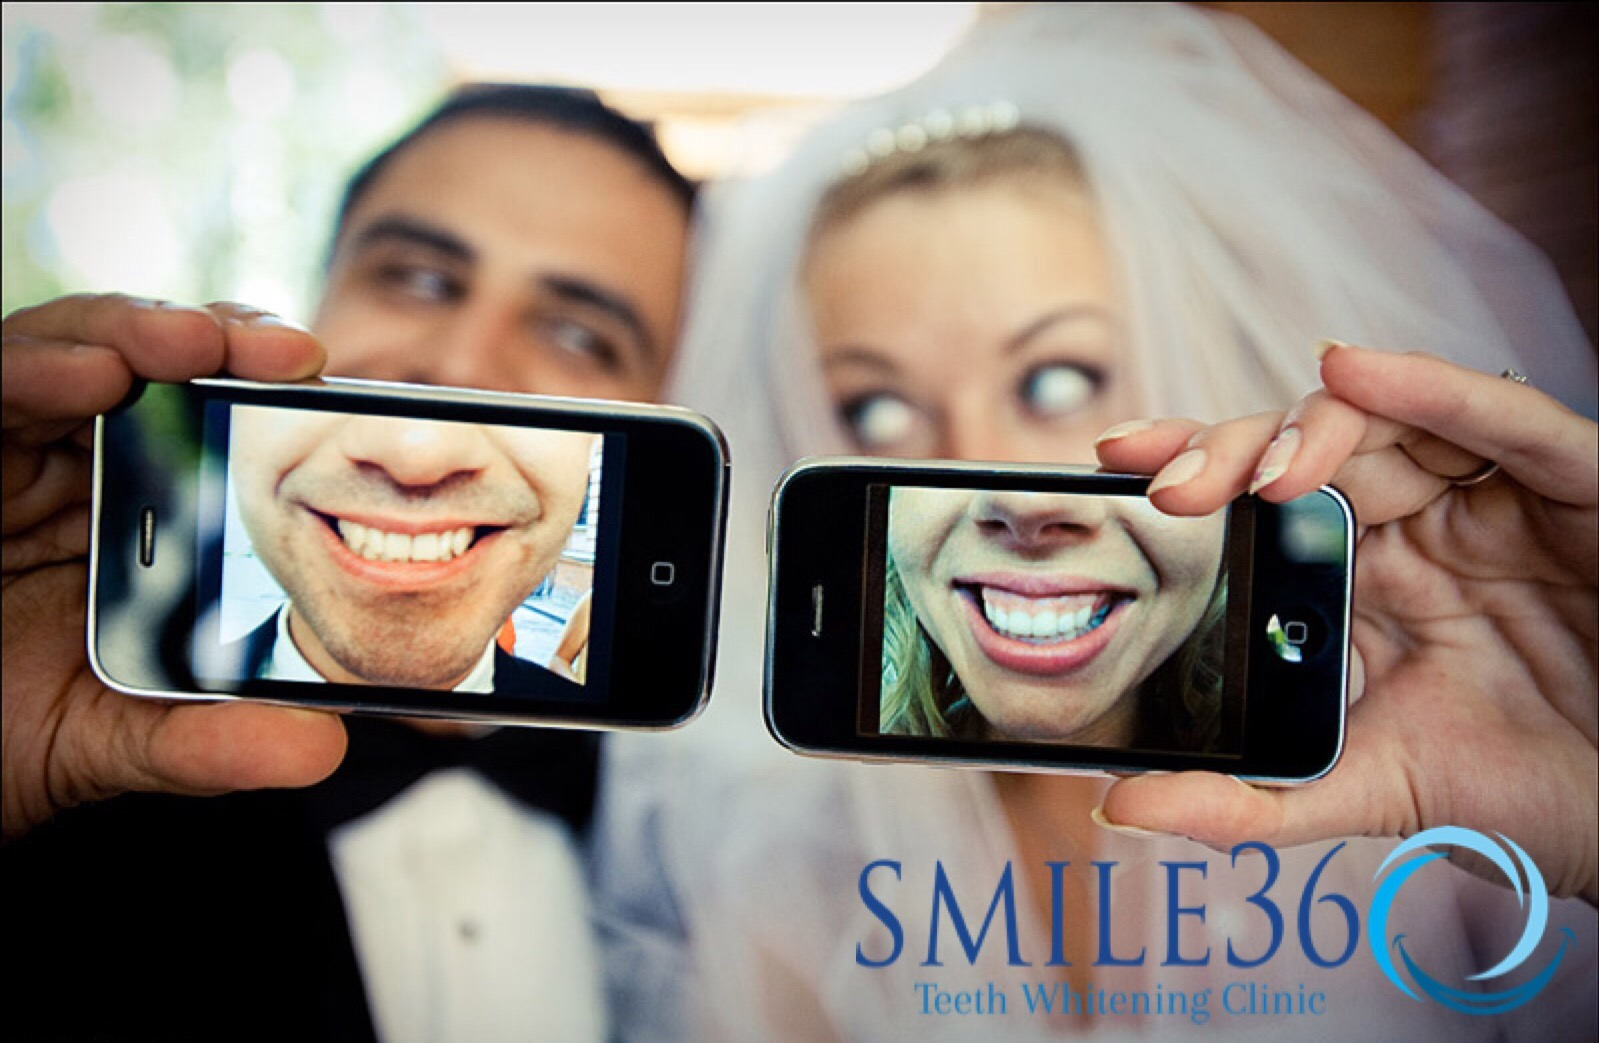 smile360 teeth whitening dermaenvy skincare